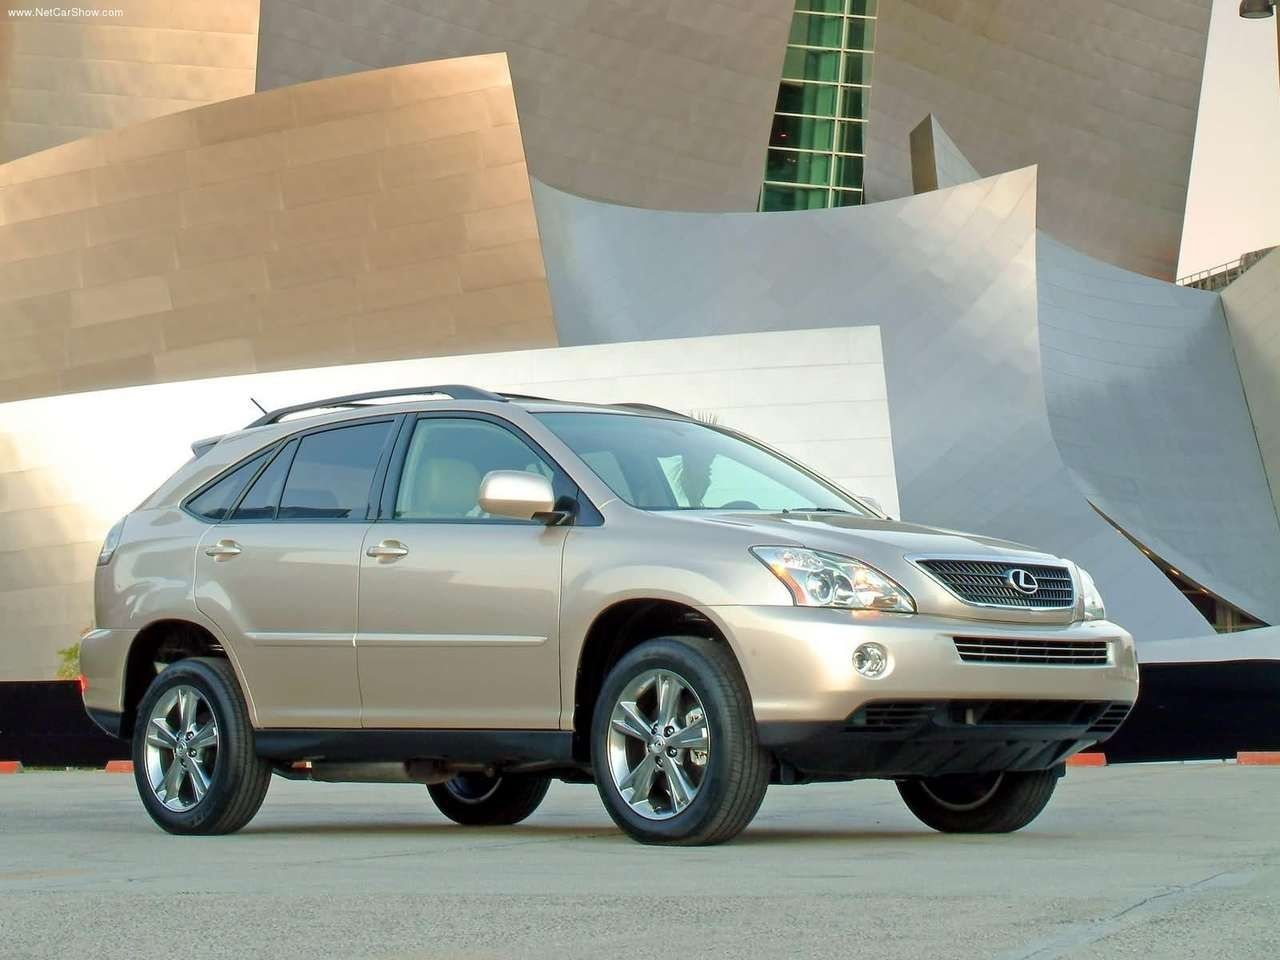 small resolution of enjoy free pdf download of electrical wiring diagram for lexus rx400h model 2005 ewd609e